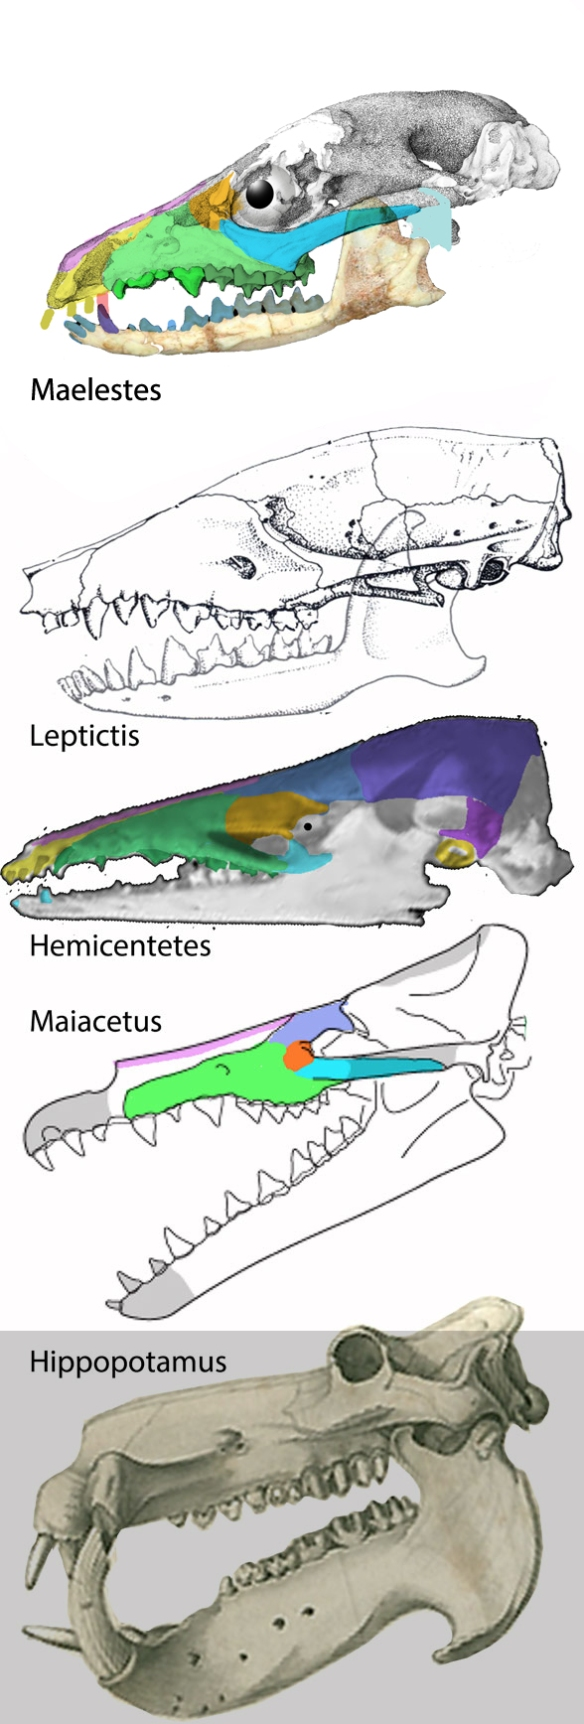 Figure 1. Whale ancestor skulls. Here Maelestes, Leptictis, Hemicentetes and Maiacetus demonstrate a gradual evolution of traits that cannot be improved by the traditional whale ancestor outgroup, Hippopotamus.